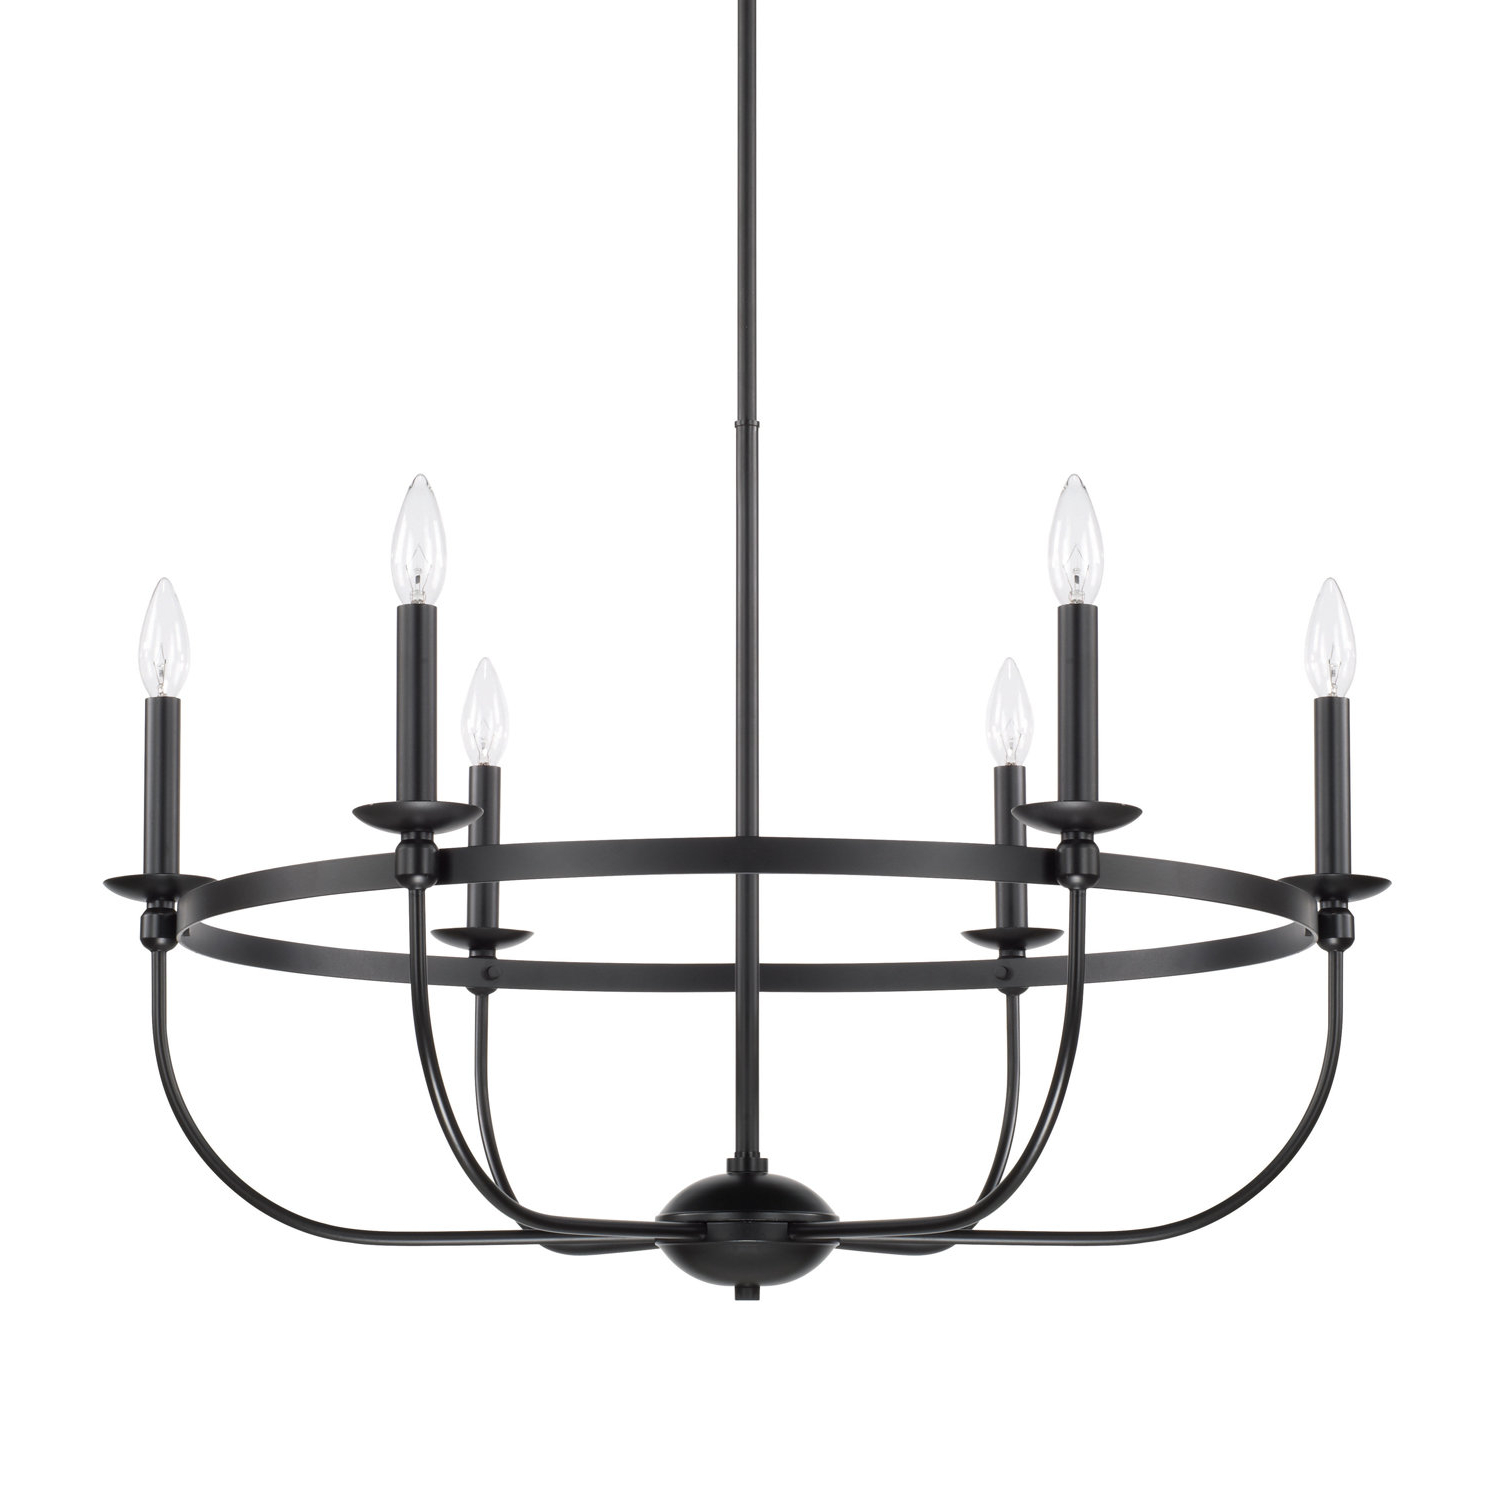 Diaz 6 Light Candle Style Chandeliers Intended For Best And Newest Gracie Oaks Claughaun 6 Light Candle Style Chandelier (View 3 of 20)